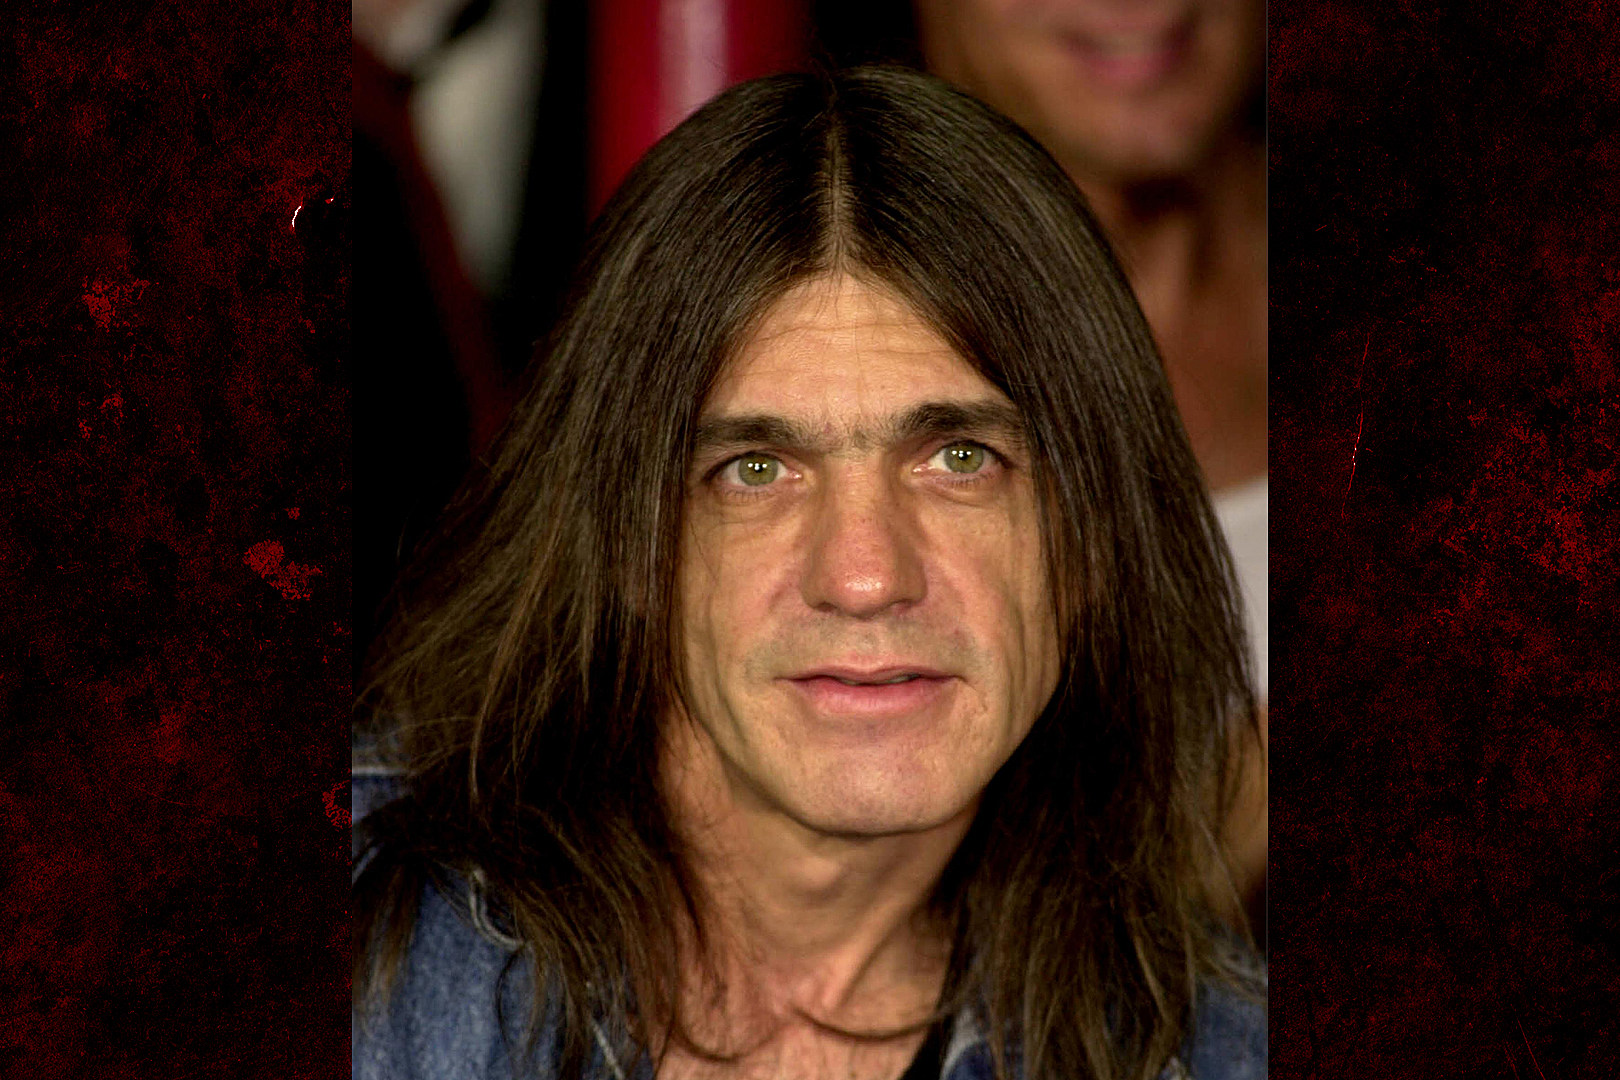 AC/DC Guitarist and Co-Founder Malcolm Young Dies at 64